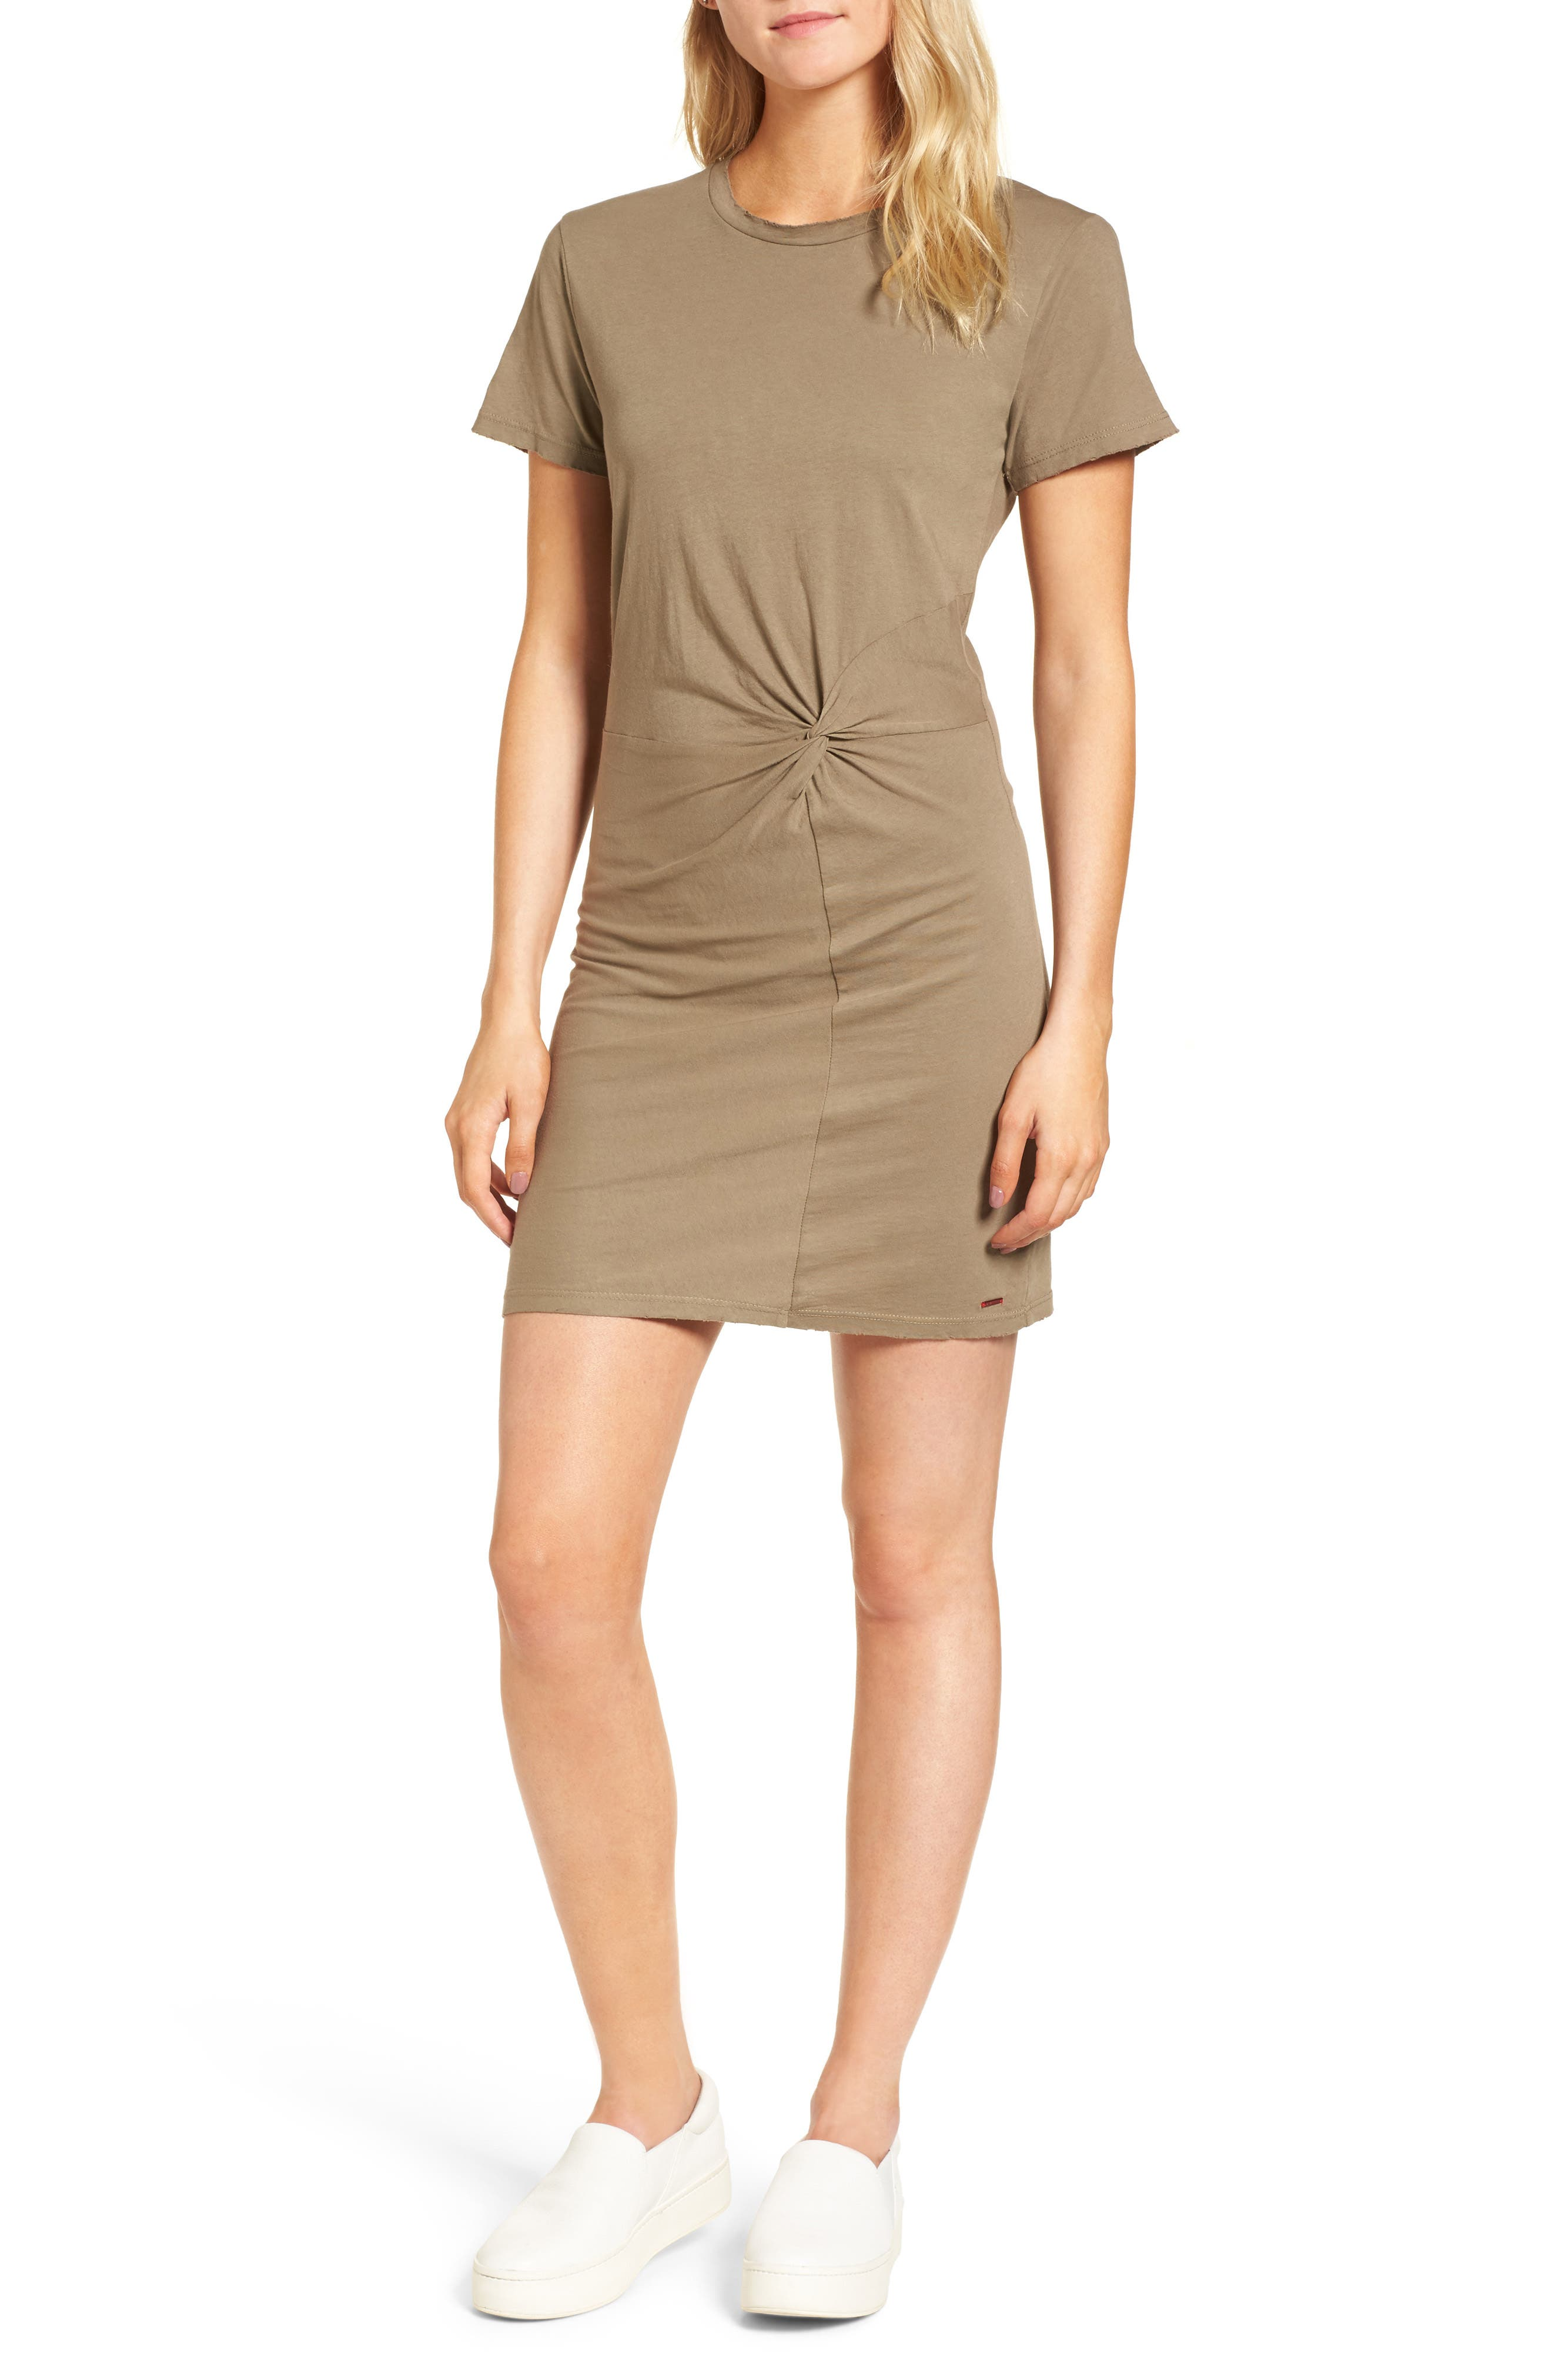 Jazz Knotted T-Shirt Dress,                         Main,                         color, Army